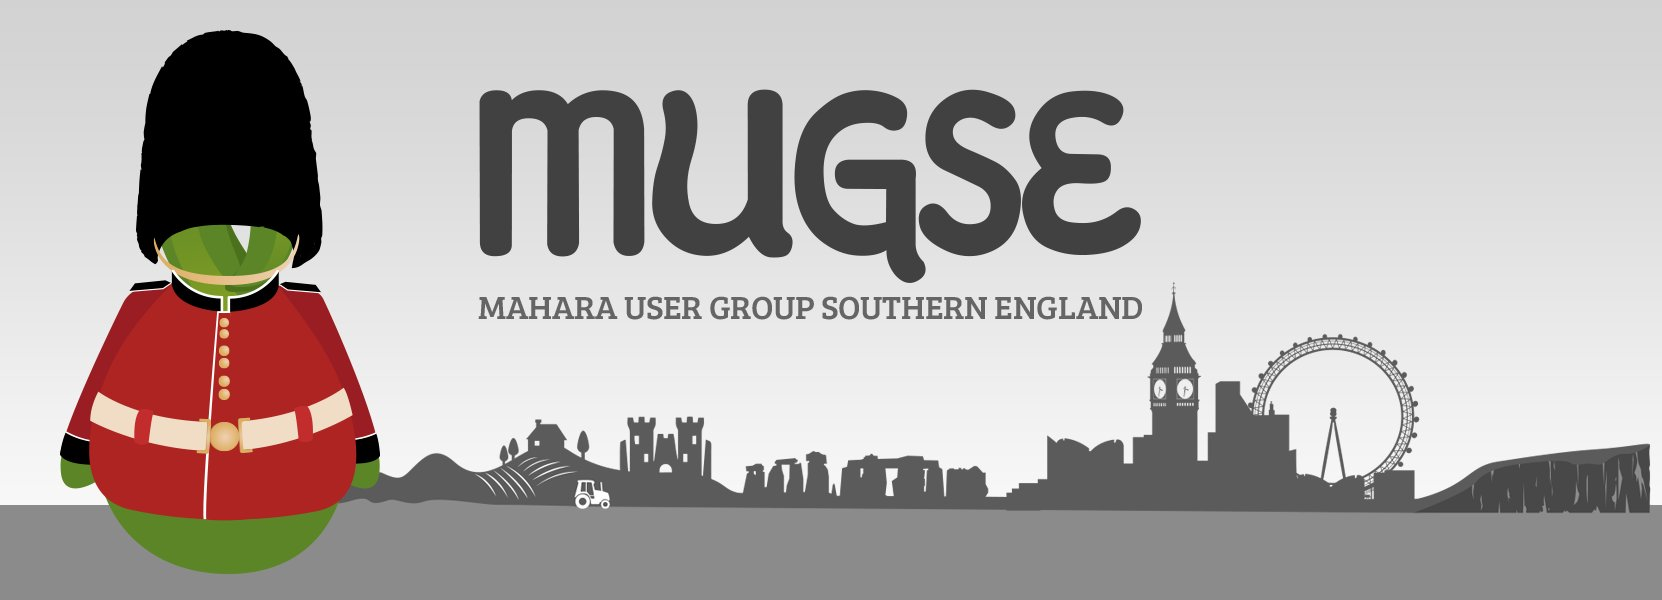 Getting ready for #MUGSE on Tuesday. Excited to welcome @maharaproject users from 10 institutions across the South! https://t.co/NKOVFPagmB https://t.co/0SmijdKf5t